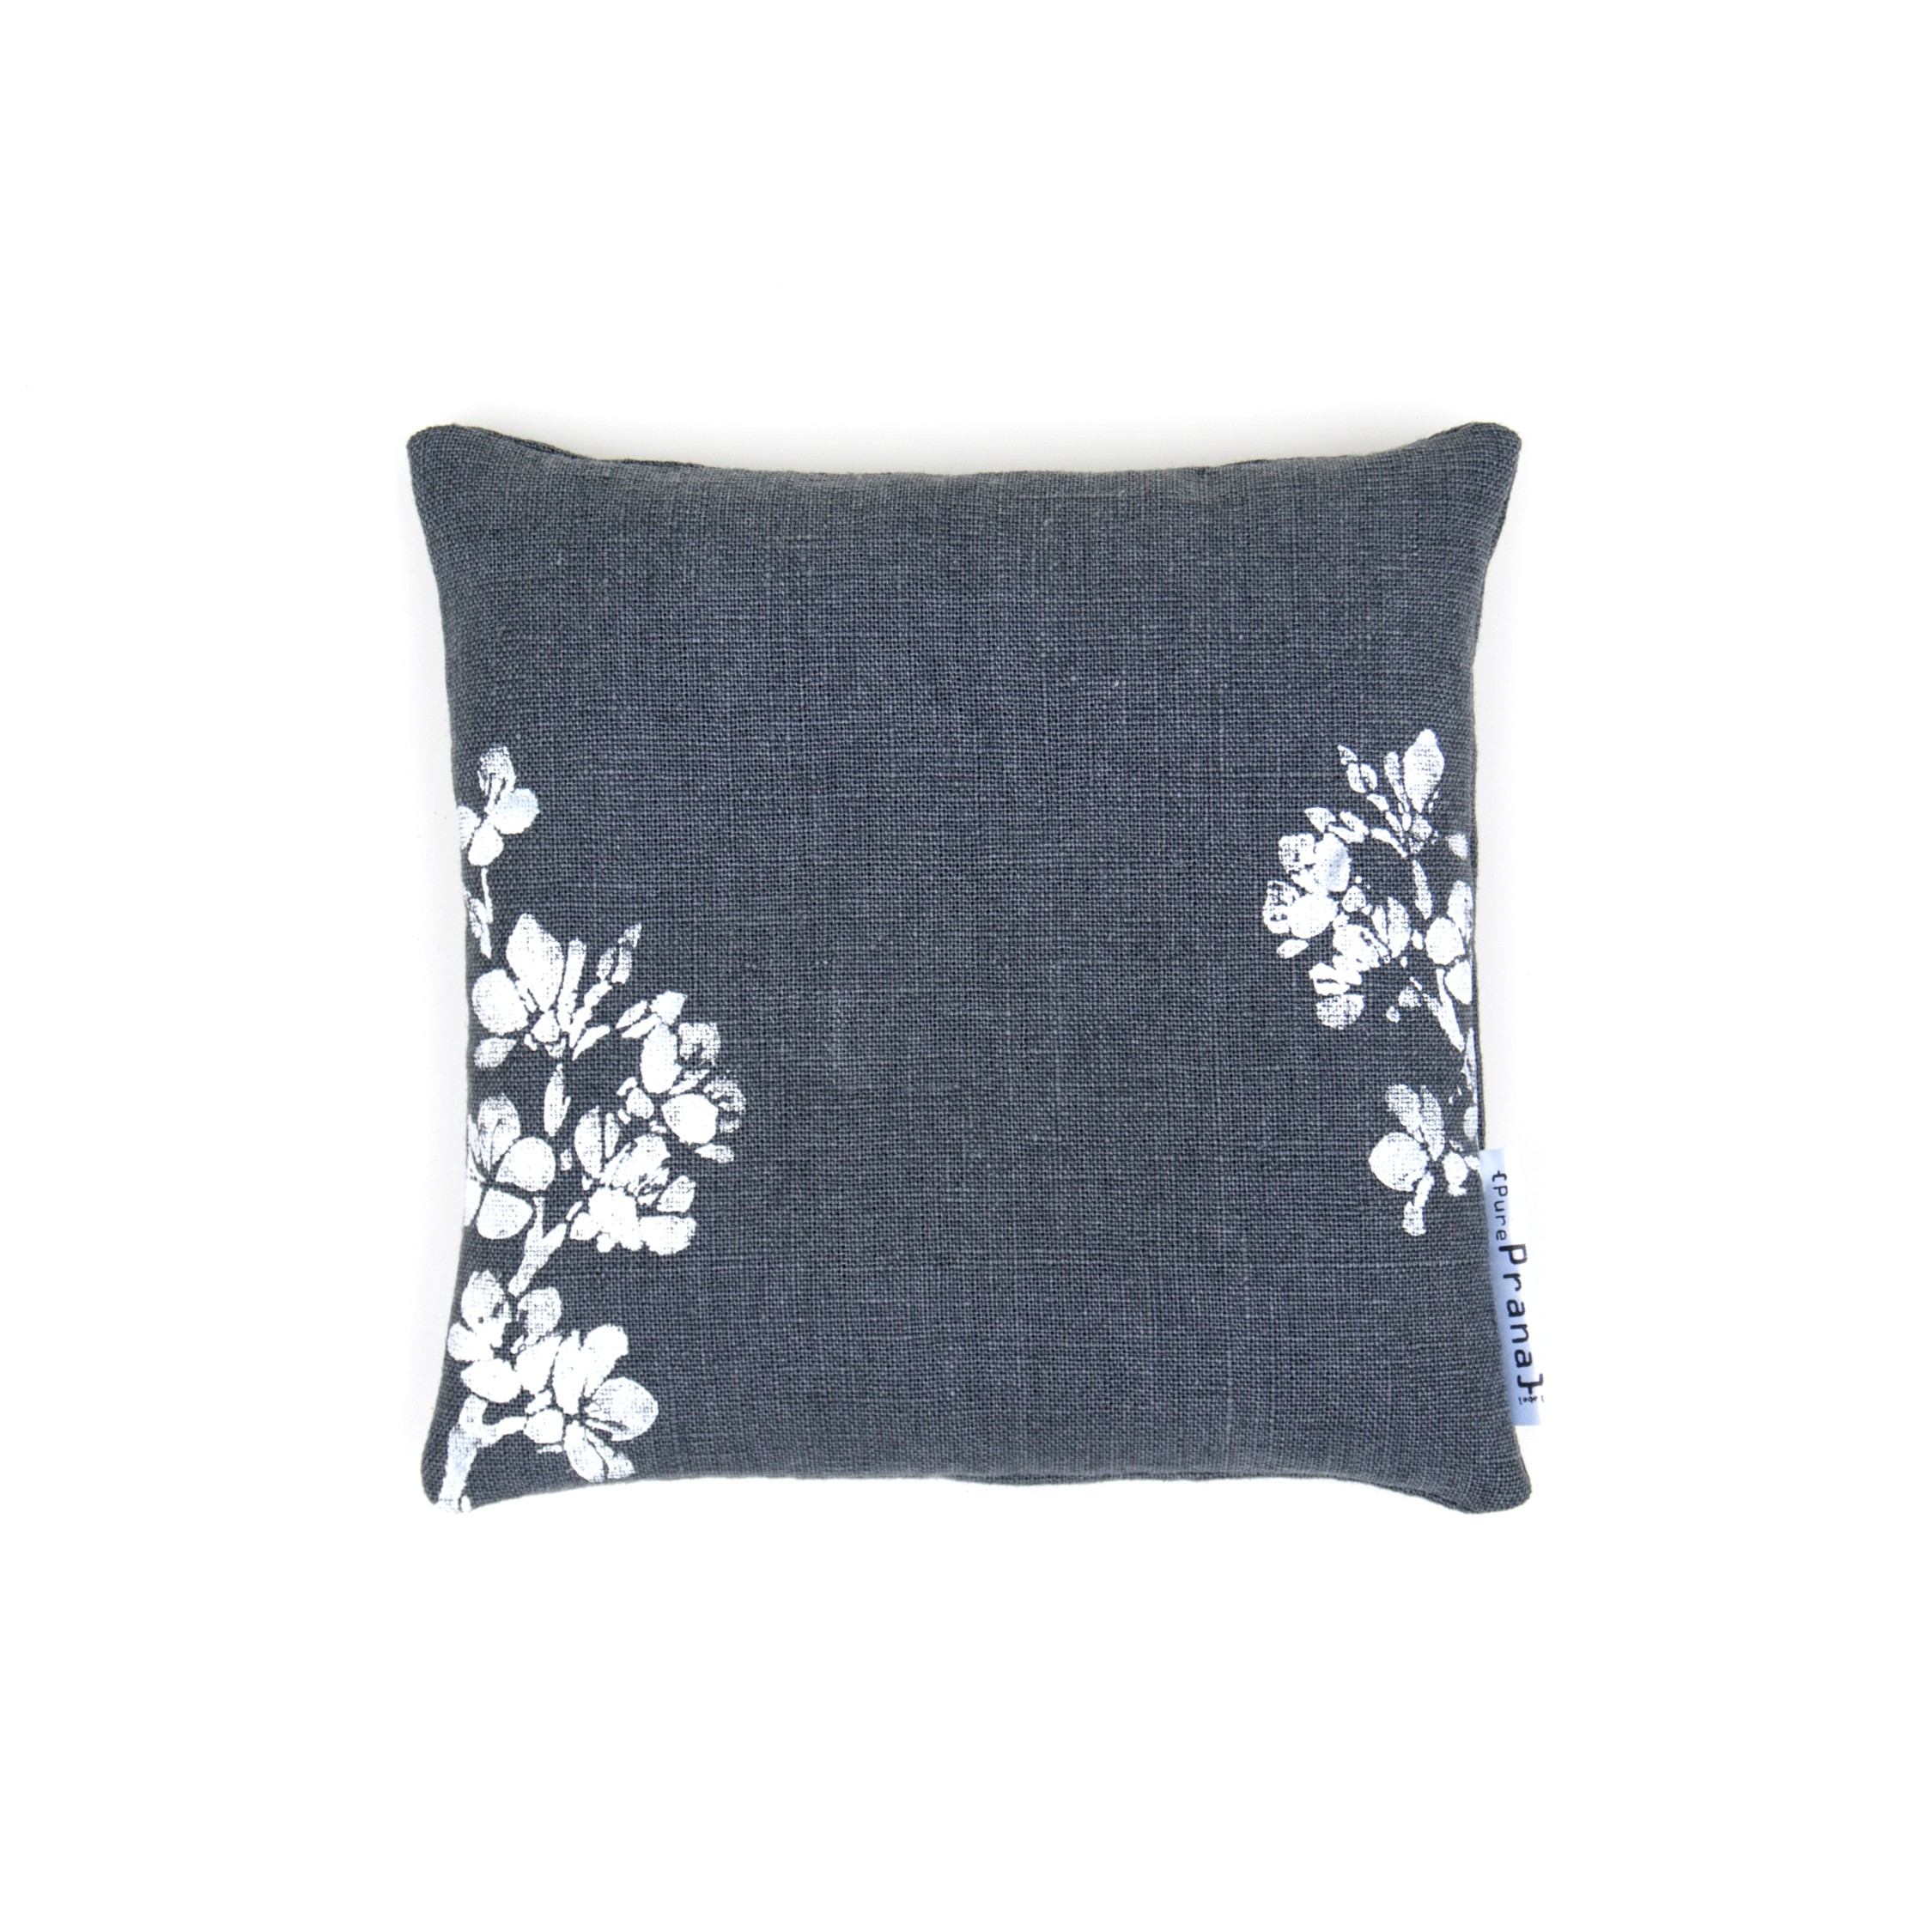 Singing bowl cushion Cherry Blossom by Pure Prana Label